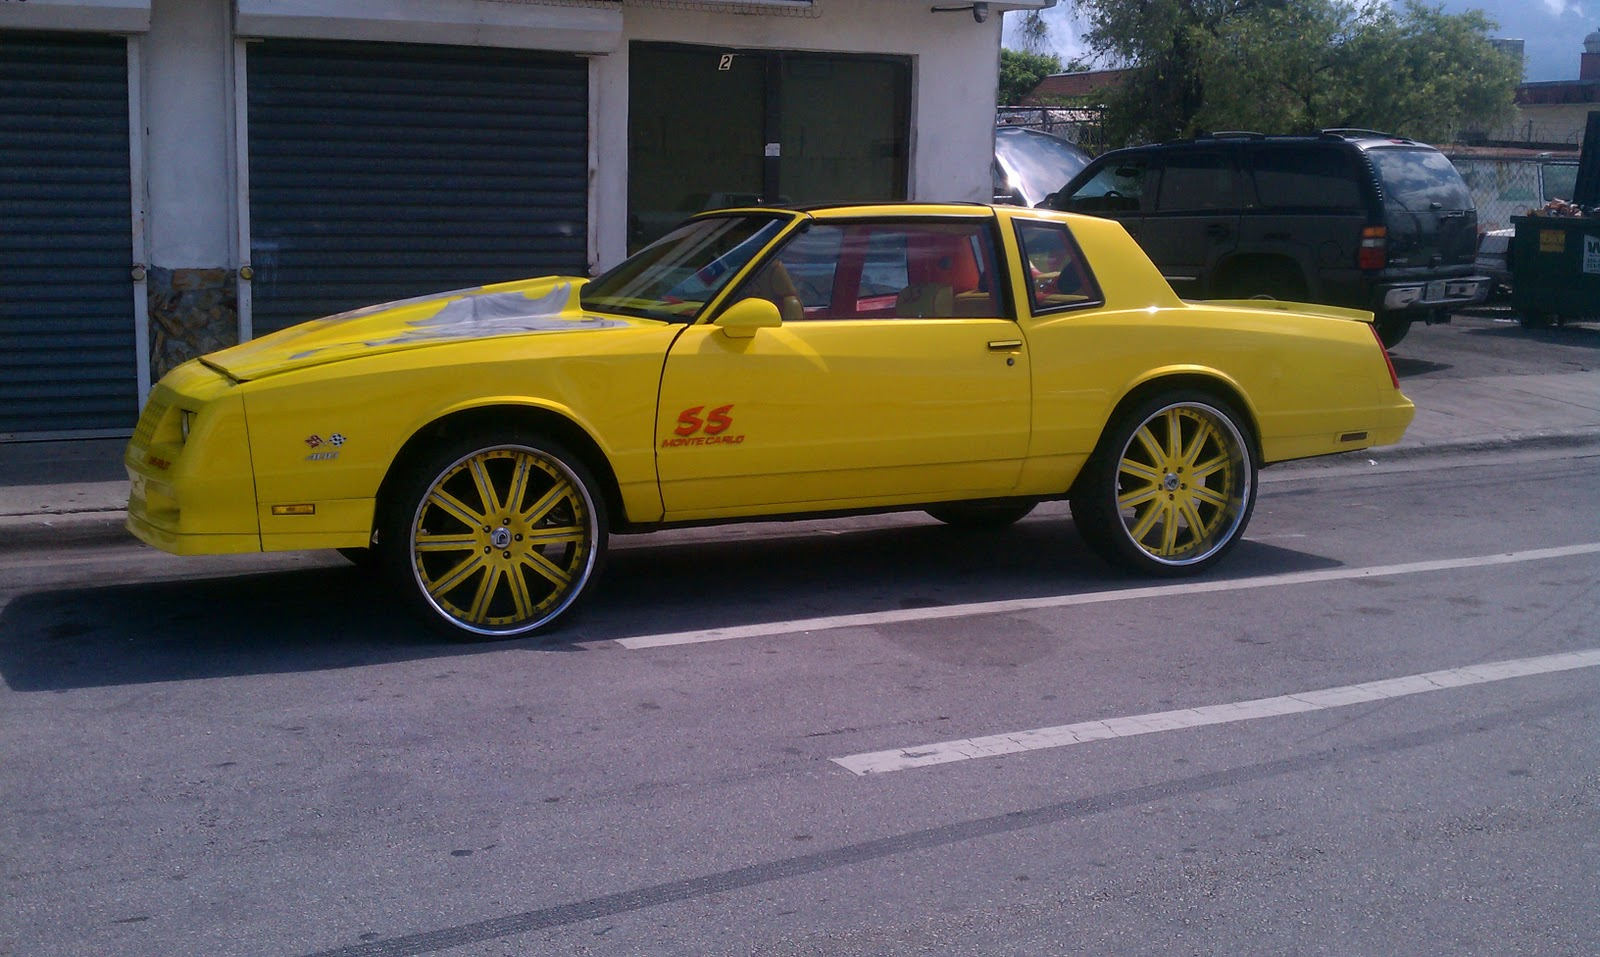 PHOTOGRAPHY BY MIAMIEARL: Monte Carlo SS T- Top on 24 inch Asanti